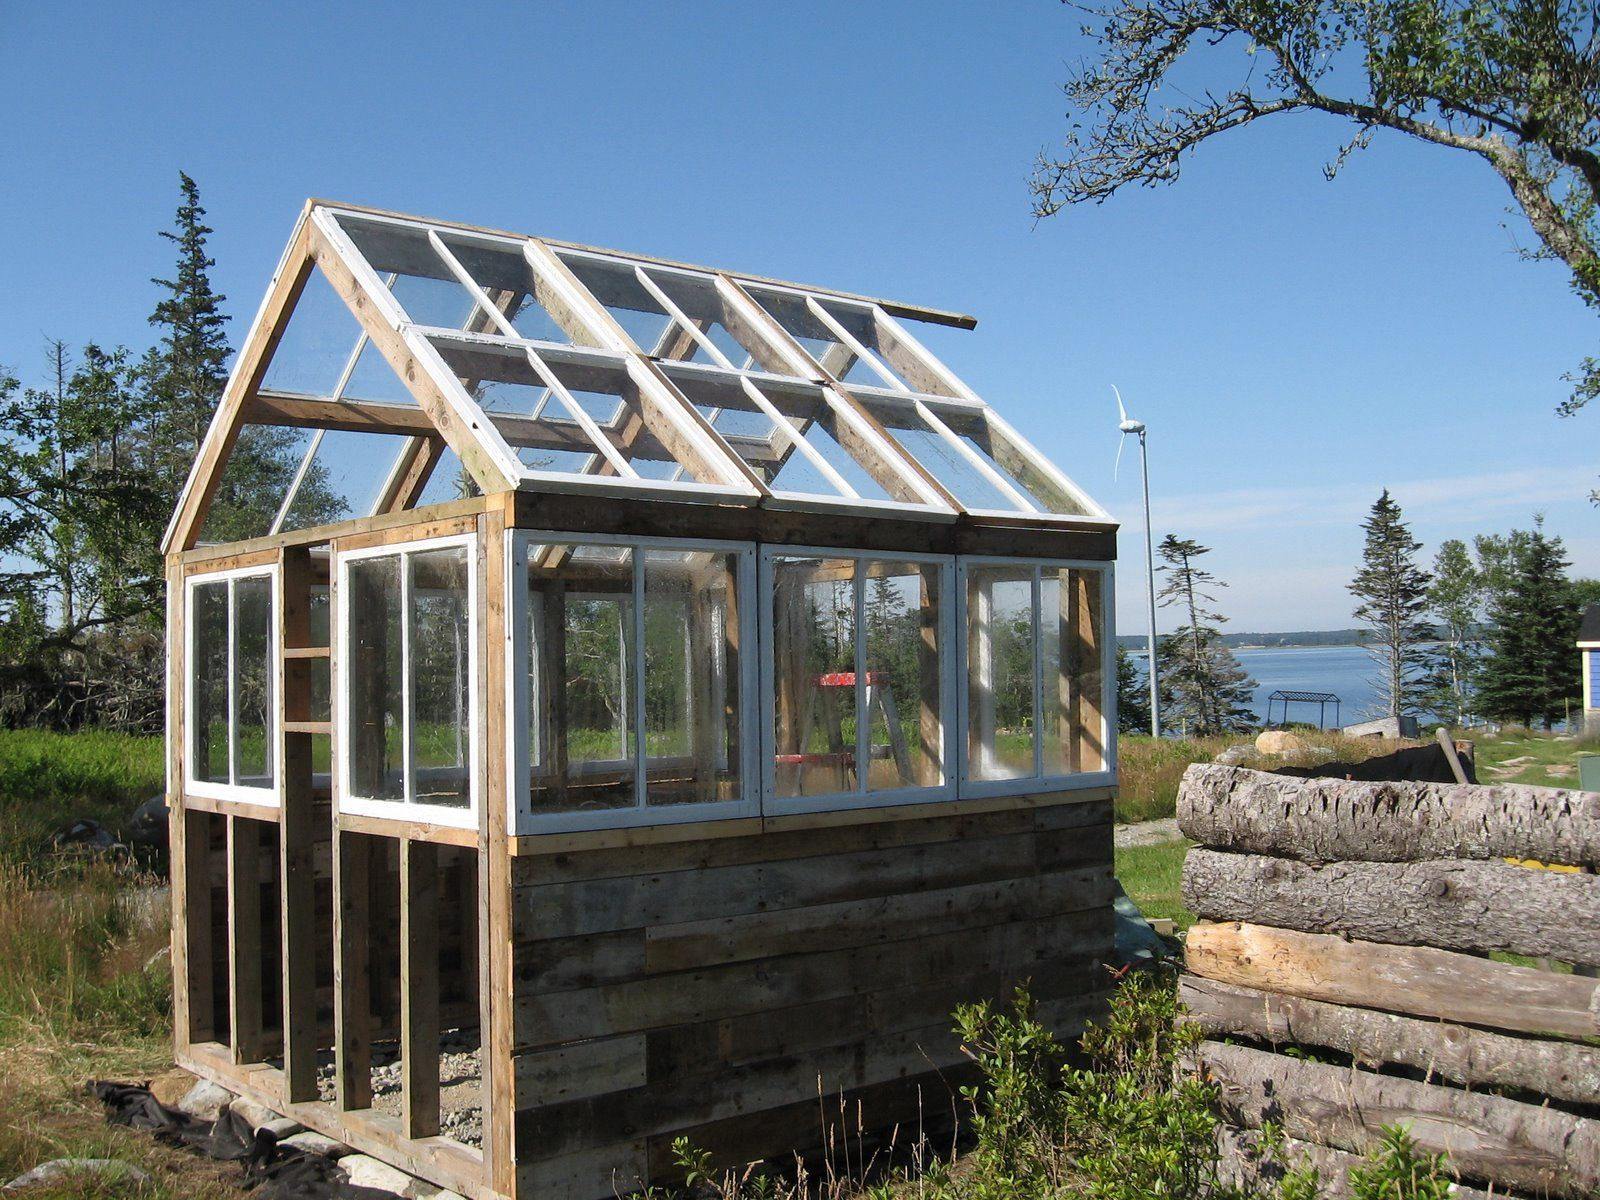 Img 2378 Jpg Image Greenhouse Kits For Sale Rustic Gardens Greenhouse Plans Backyard greenhouse kits for sale